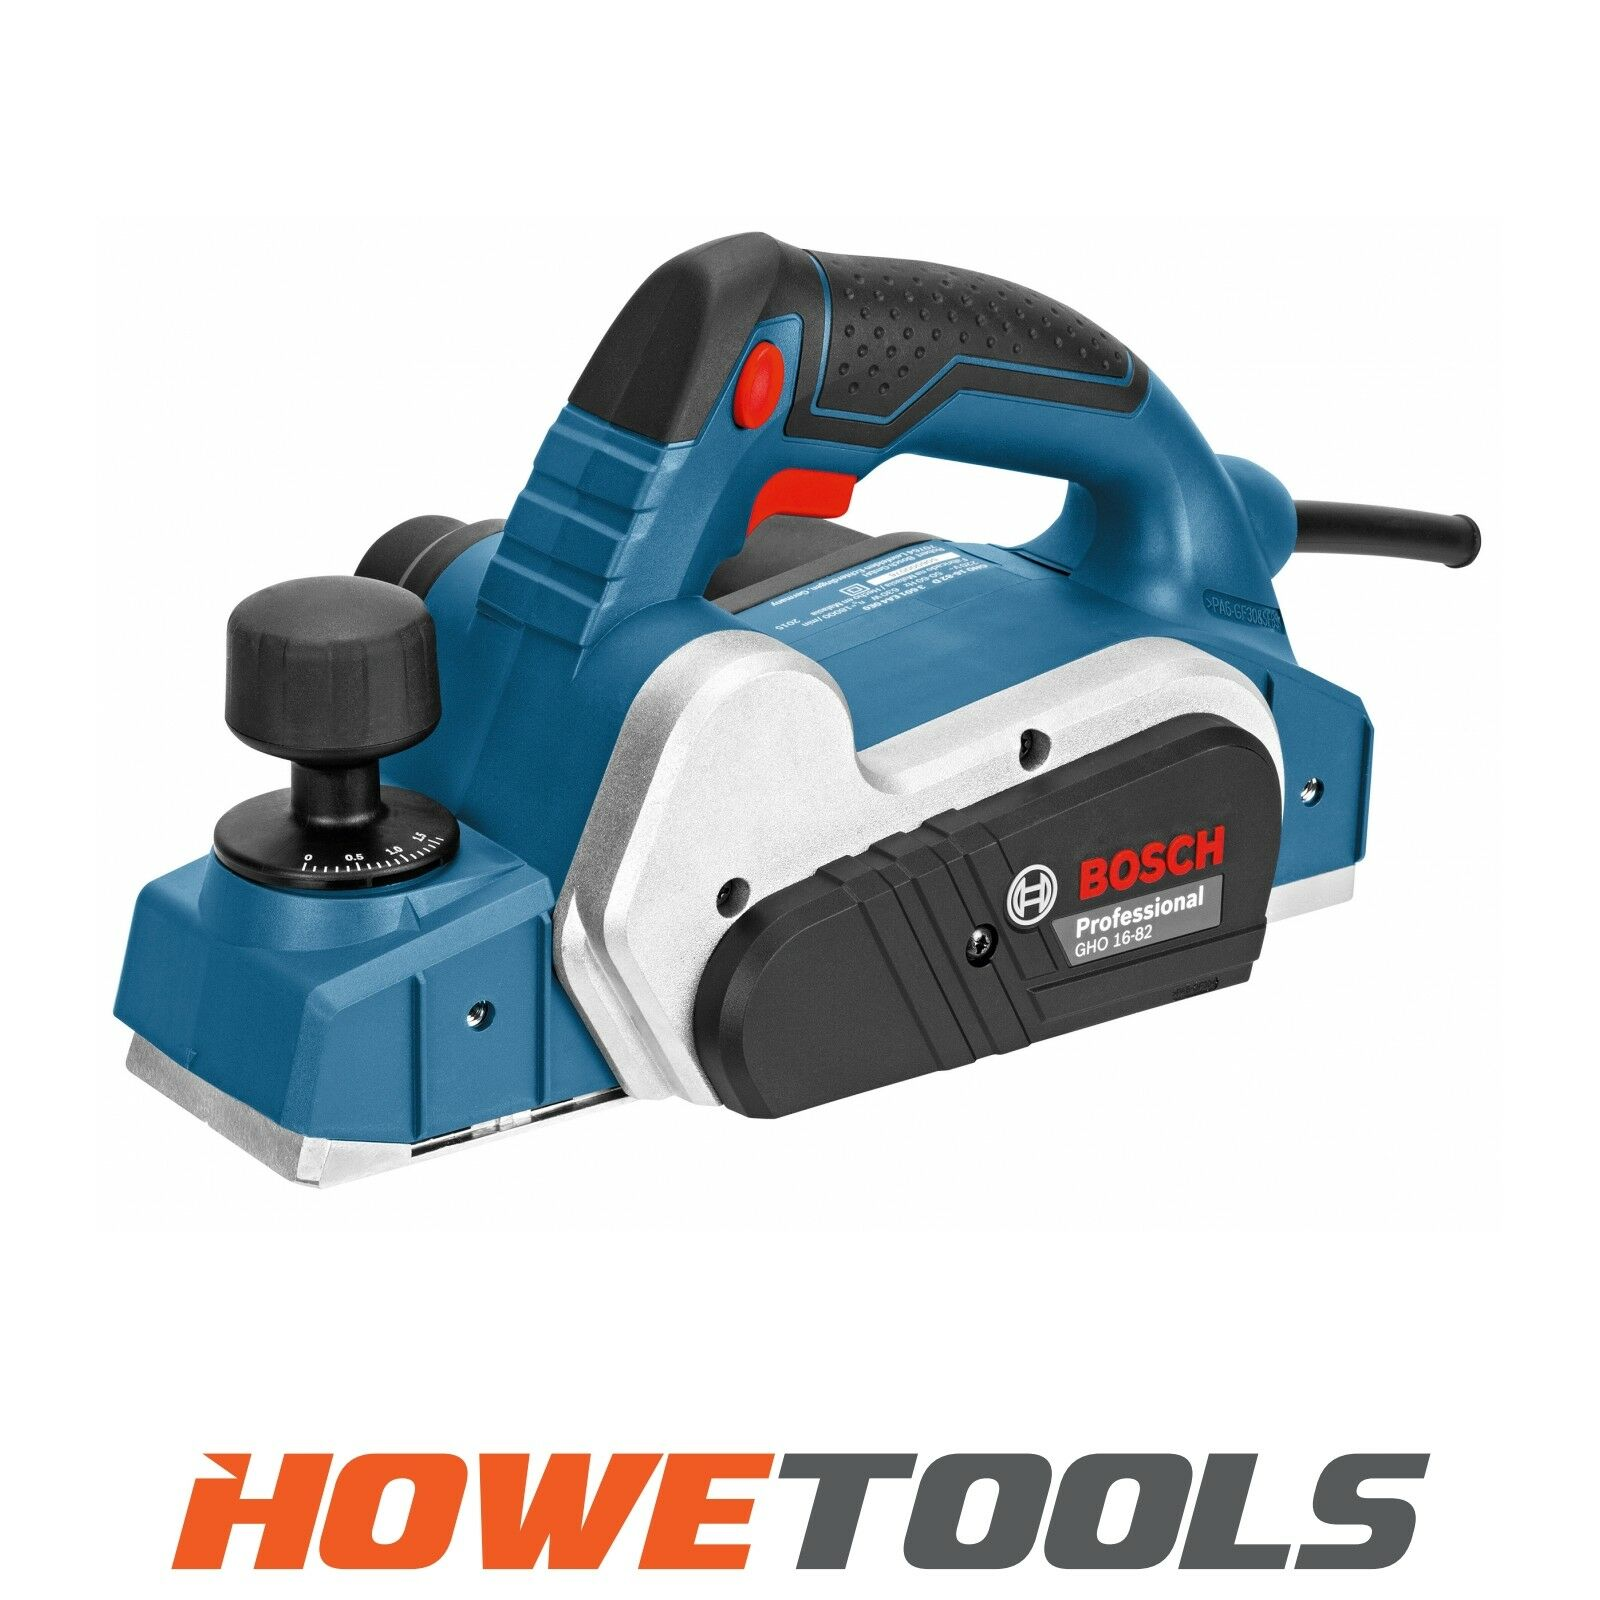 RECONDITIONED BOSCH GHO 16-82 D 110 VOLT ELECTRIC PLANER